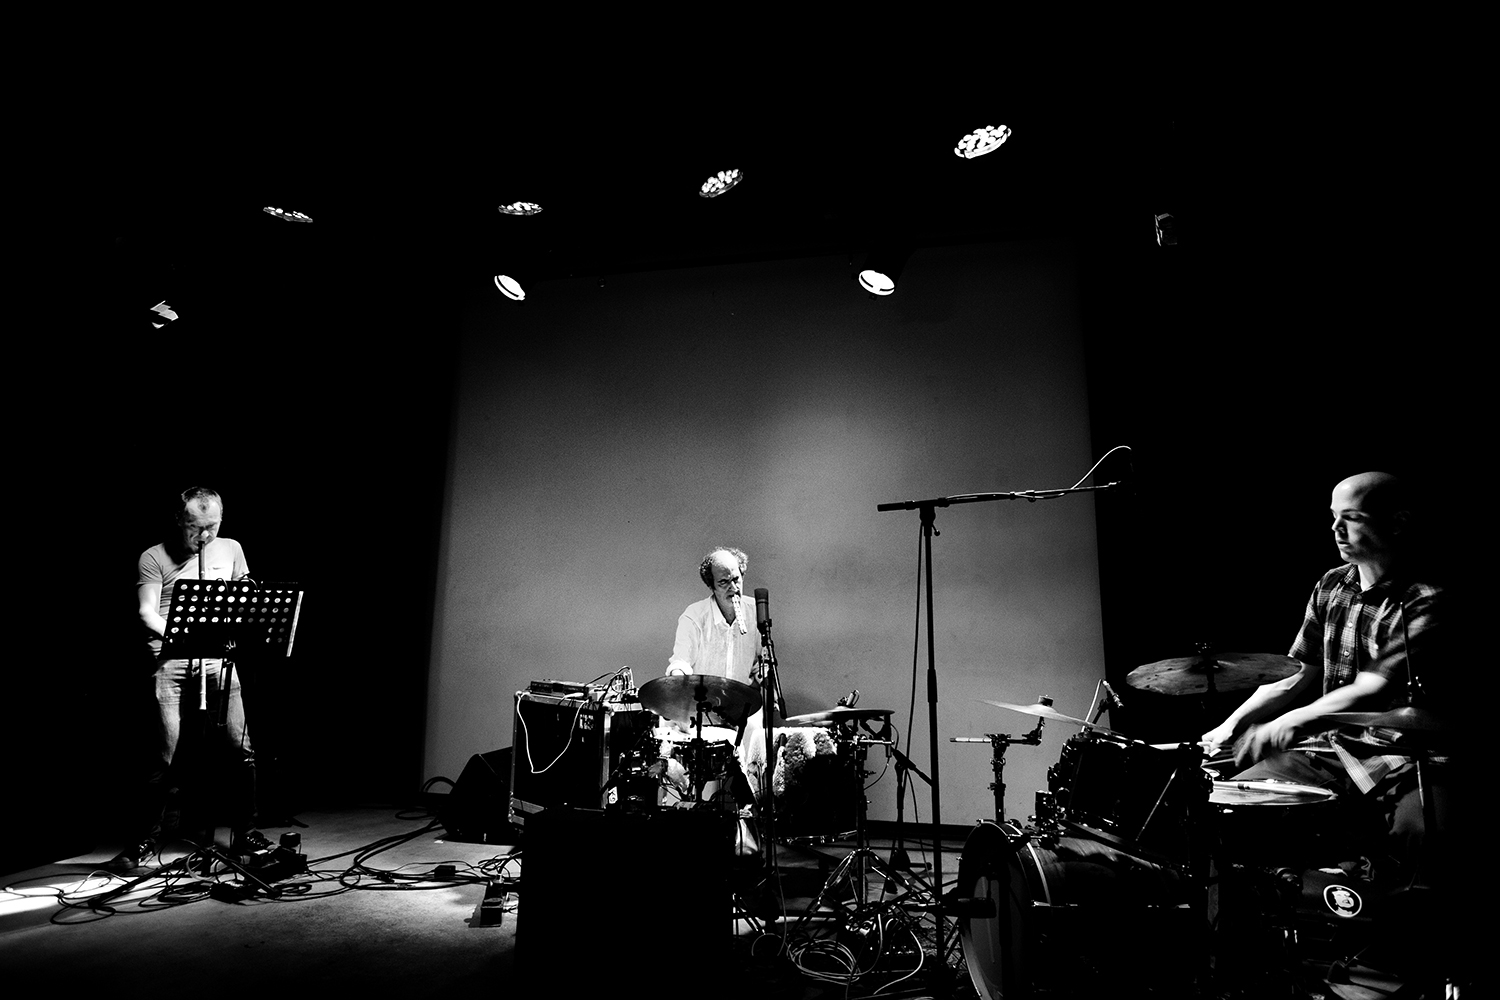 David Maranha & Chris Corsano & Richard Youngs by Laurent Orseau - Les Ateliers Claus - Brussels, Belgium #1